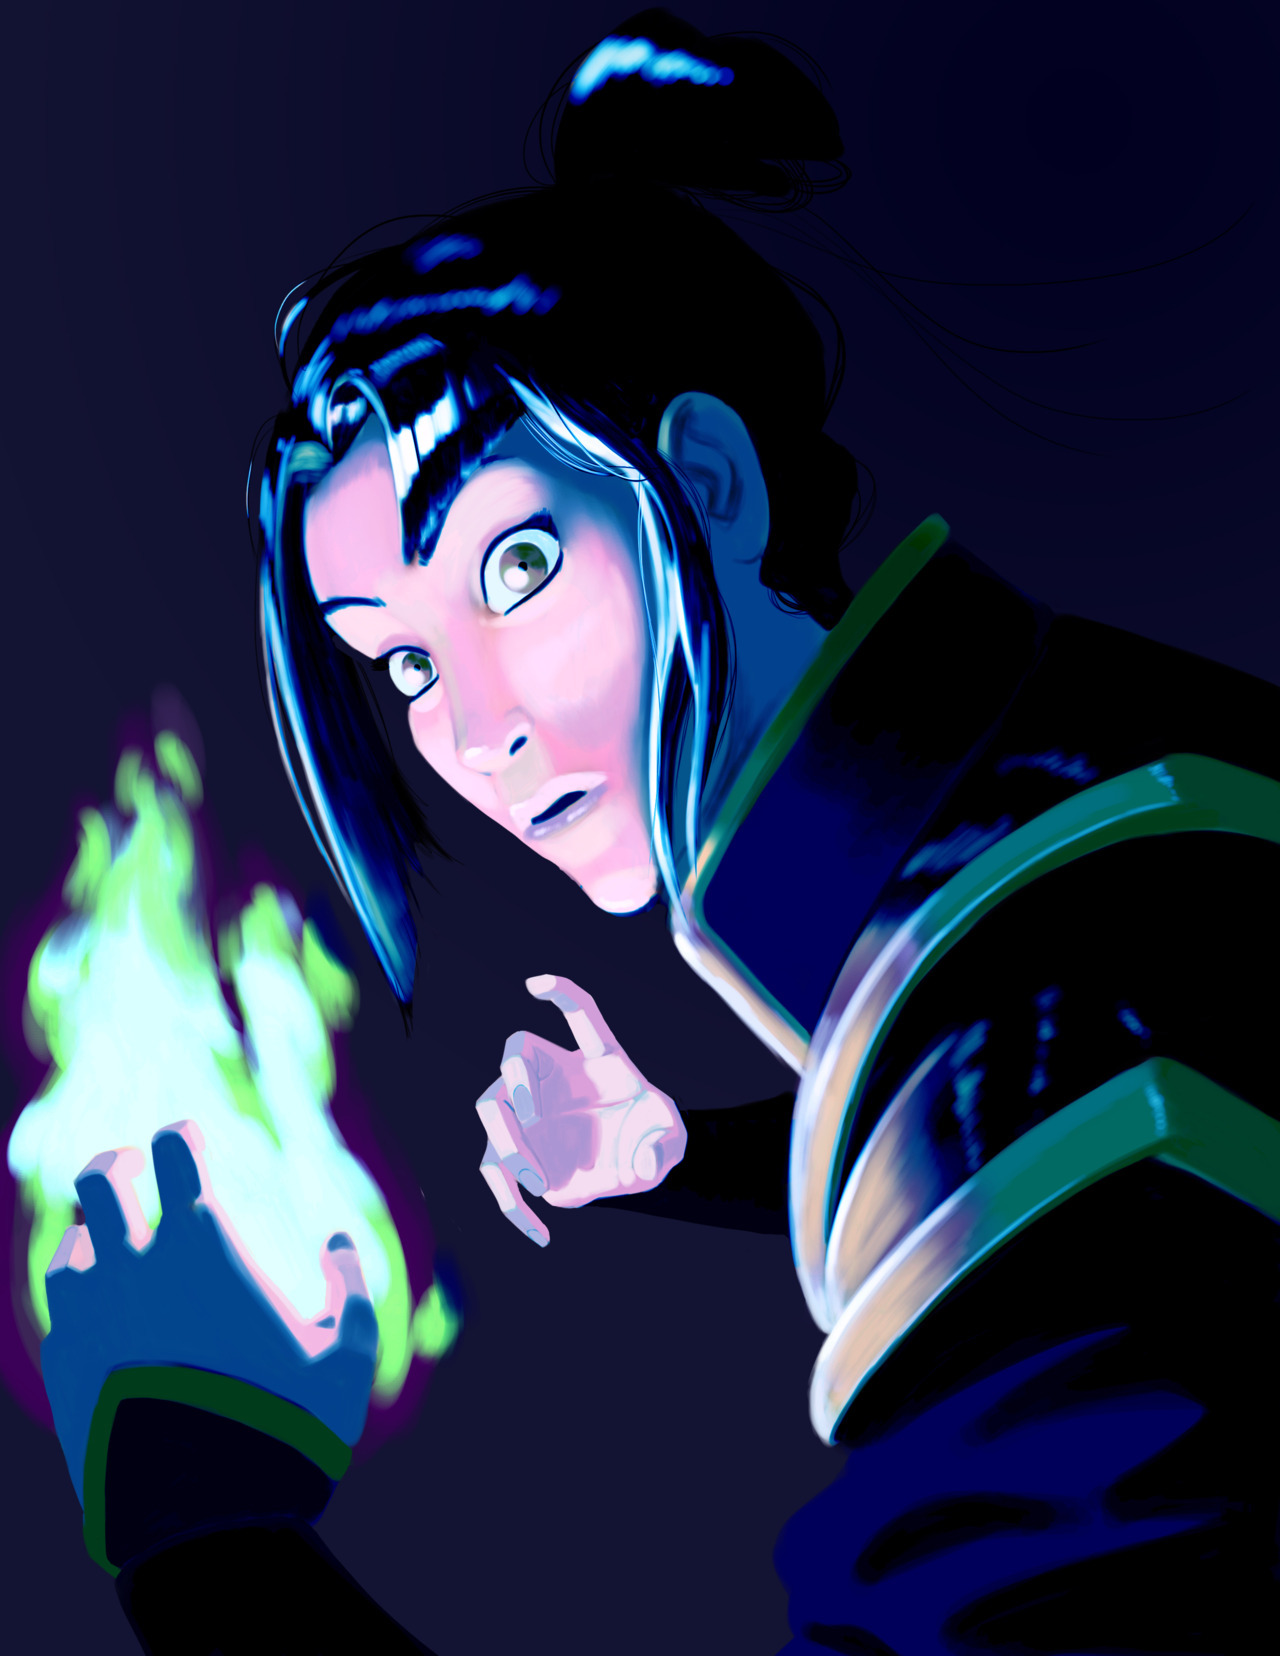 Well, that was embarrassing. In my foggy memory, Azula's fire was only blue sometimes, and so I thought it was okay to paint her with regular ol' yellow fire. I was informed that that was not the case, and so I have tried to use color balance filters to shift the colors in the file, with not entirely satisfactory results. I apologize for the earlier error, and would like to offer a full refund to any unhappy customers.